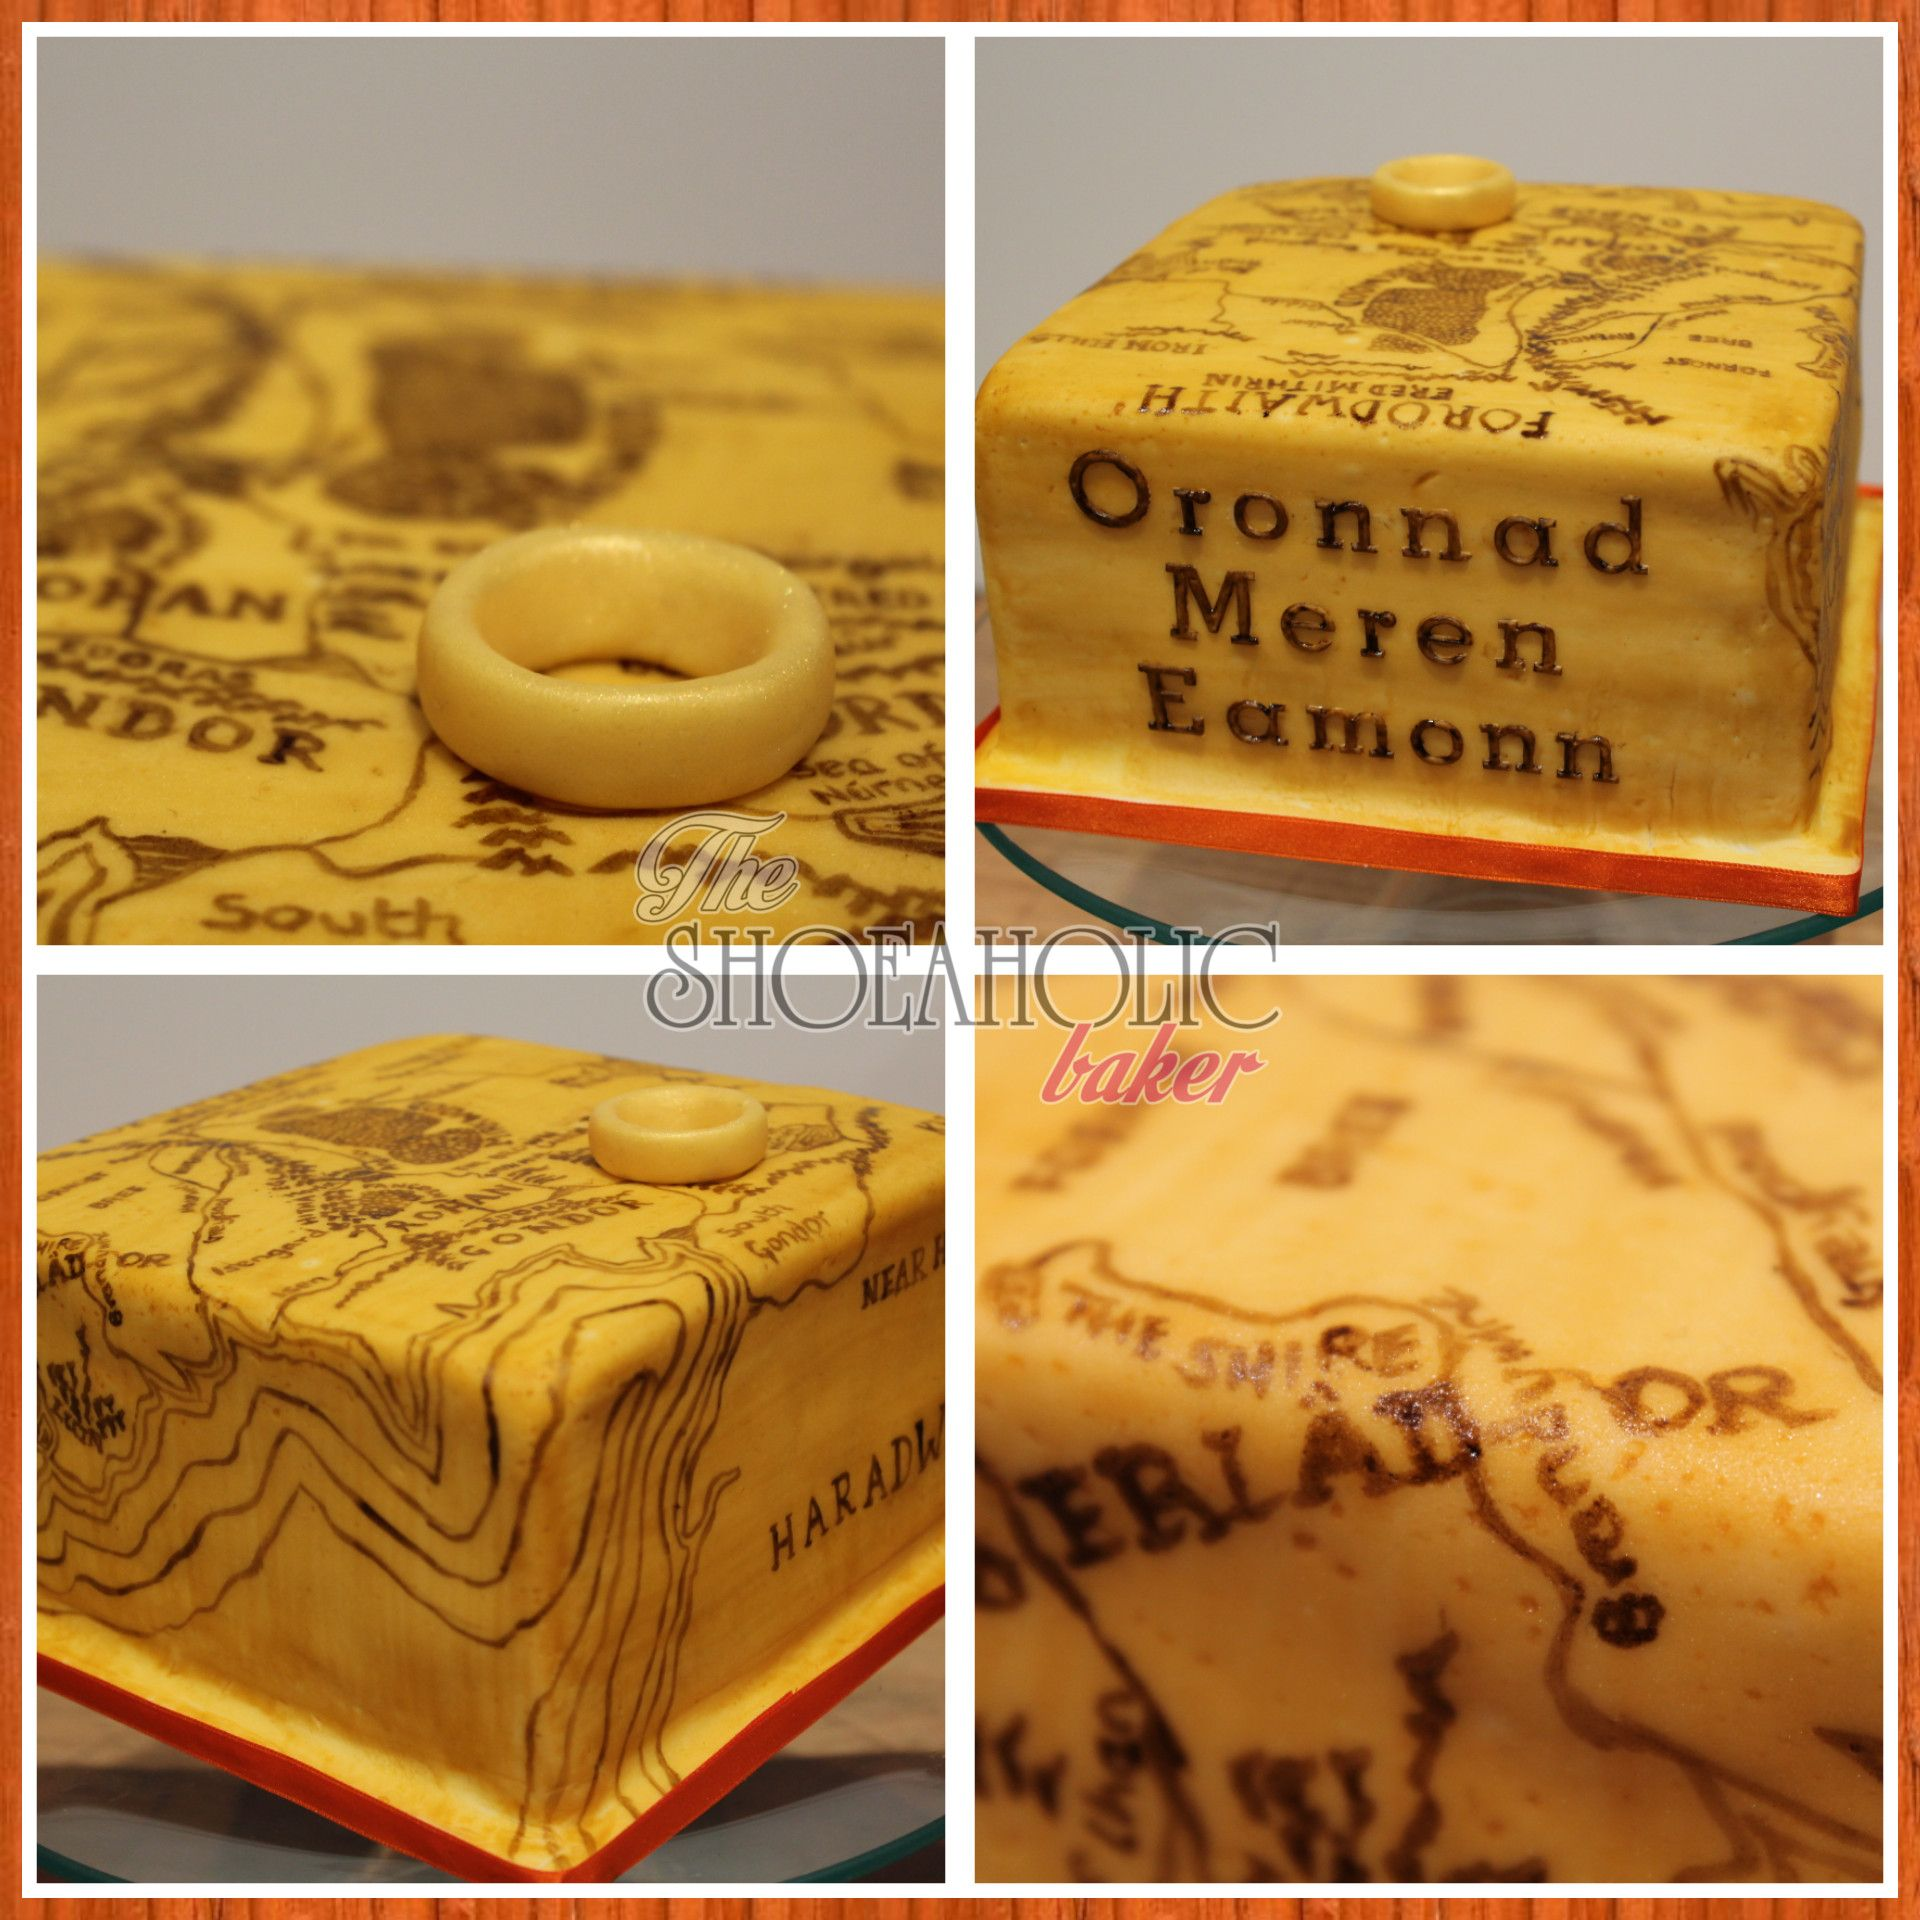 6 Inch Square Lord Of The Rings Cake With Hand Painted Map